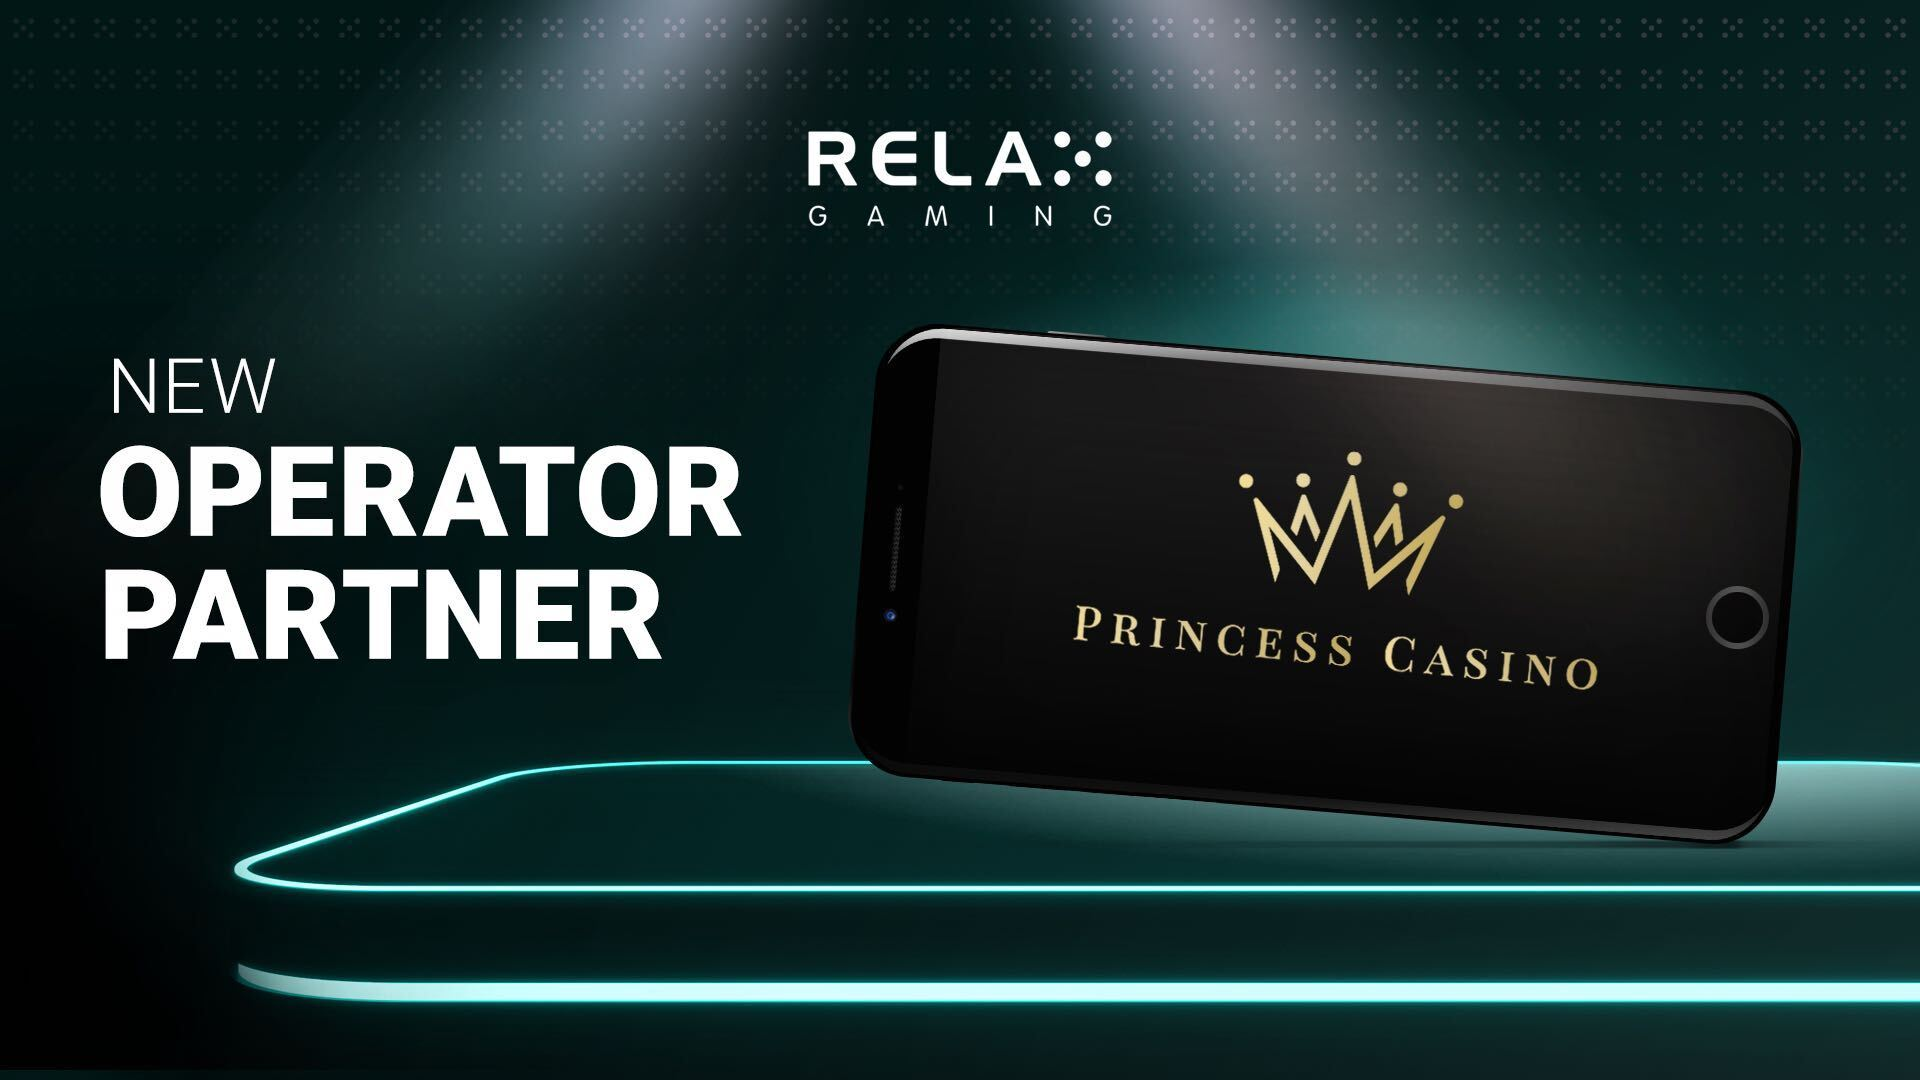 Relax Gaming launches with Princess Casino